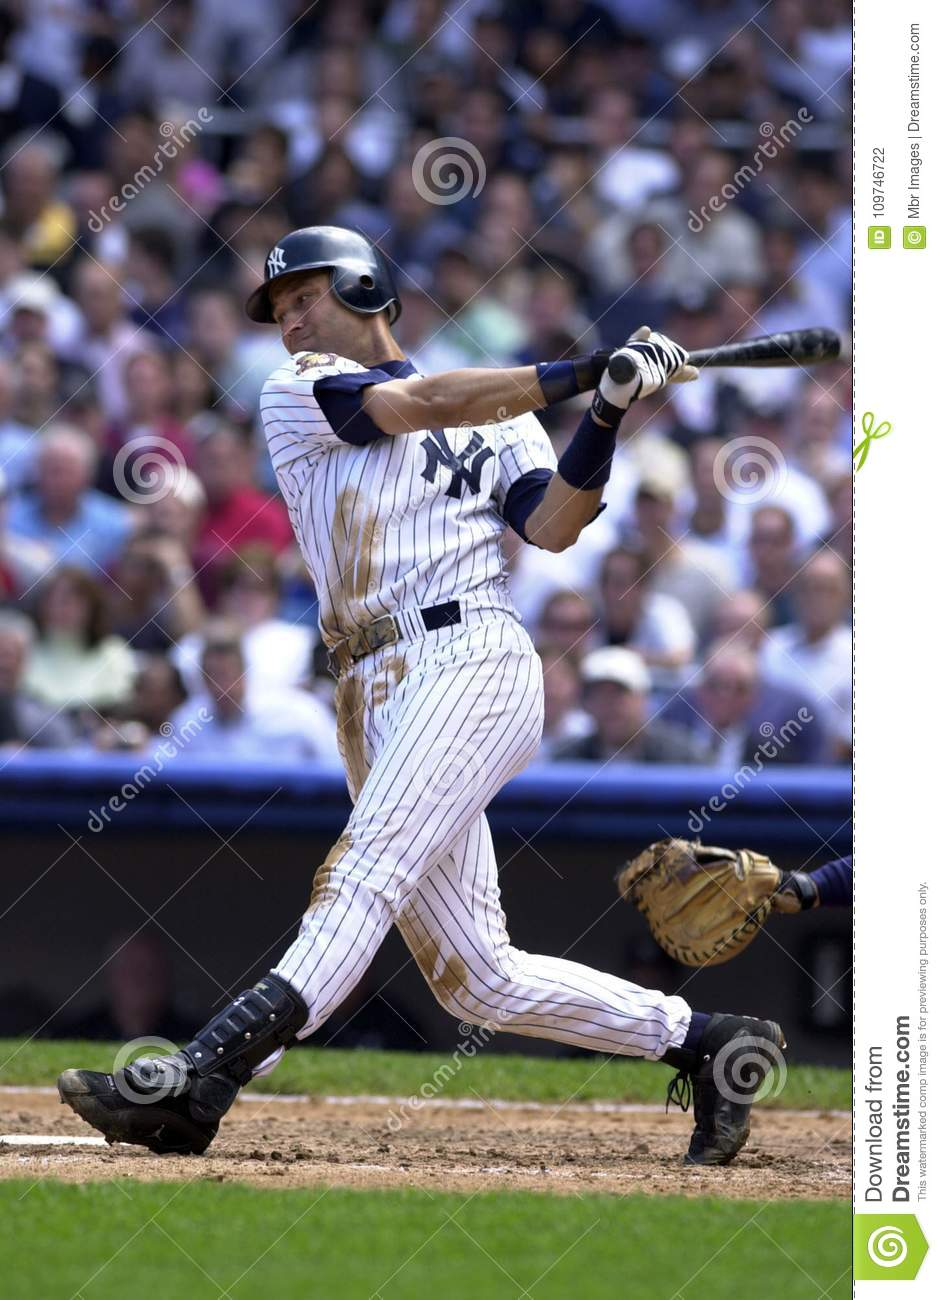 Derek jeter swinging does